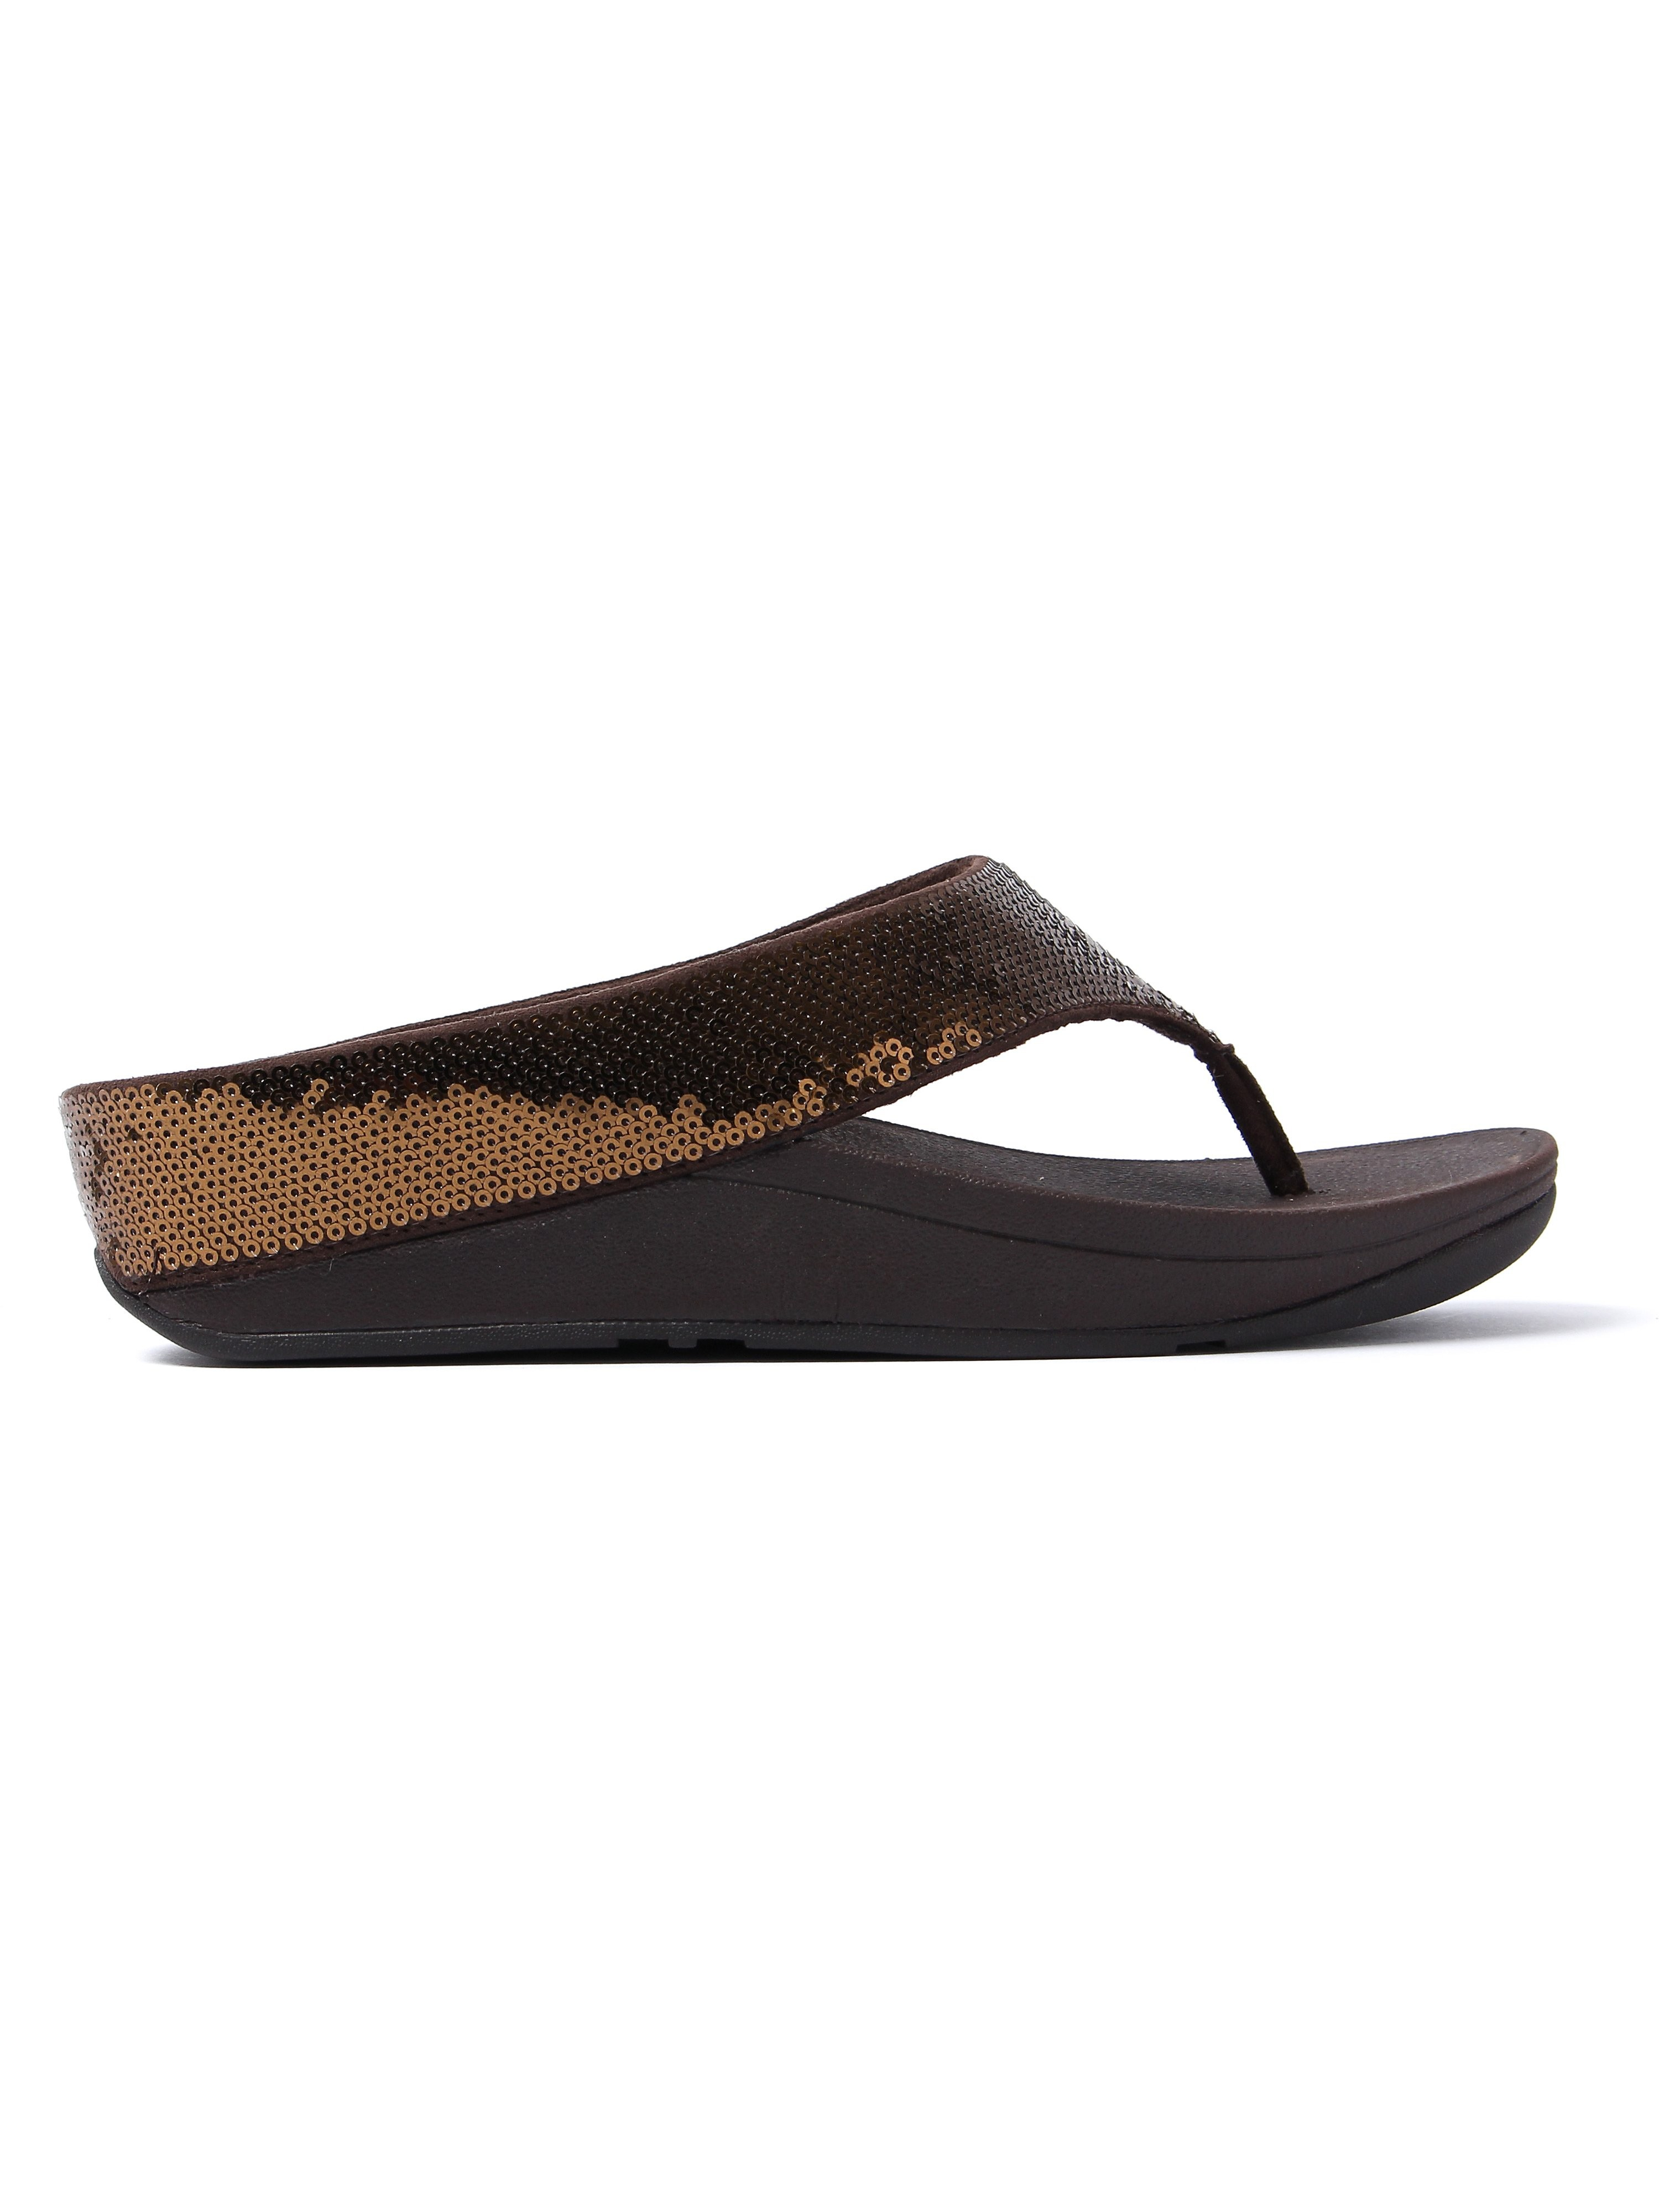 FitFlop Women's Ringer Sequin Sandals - Bronze